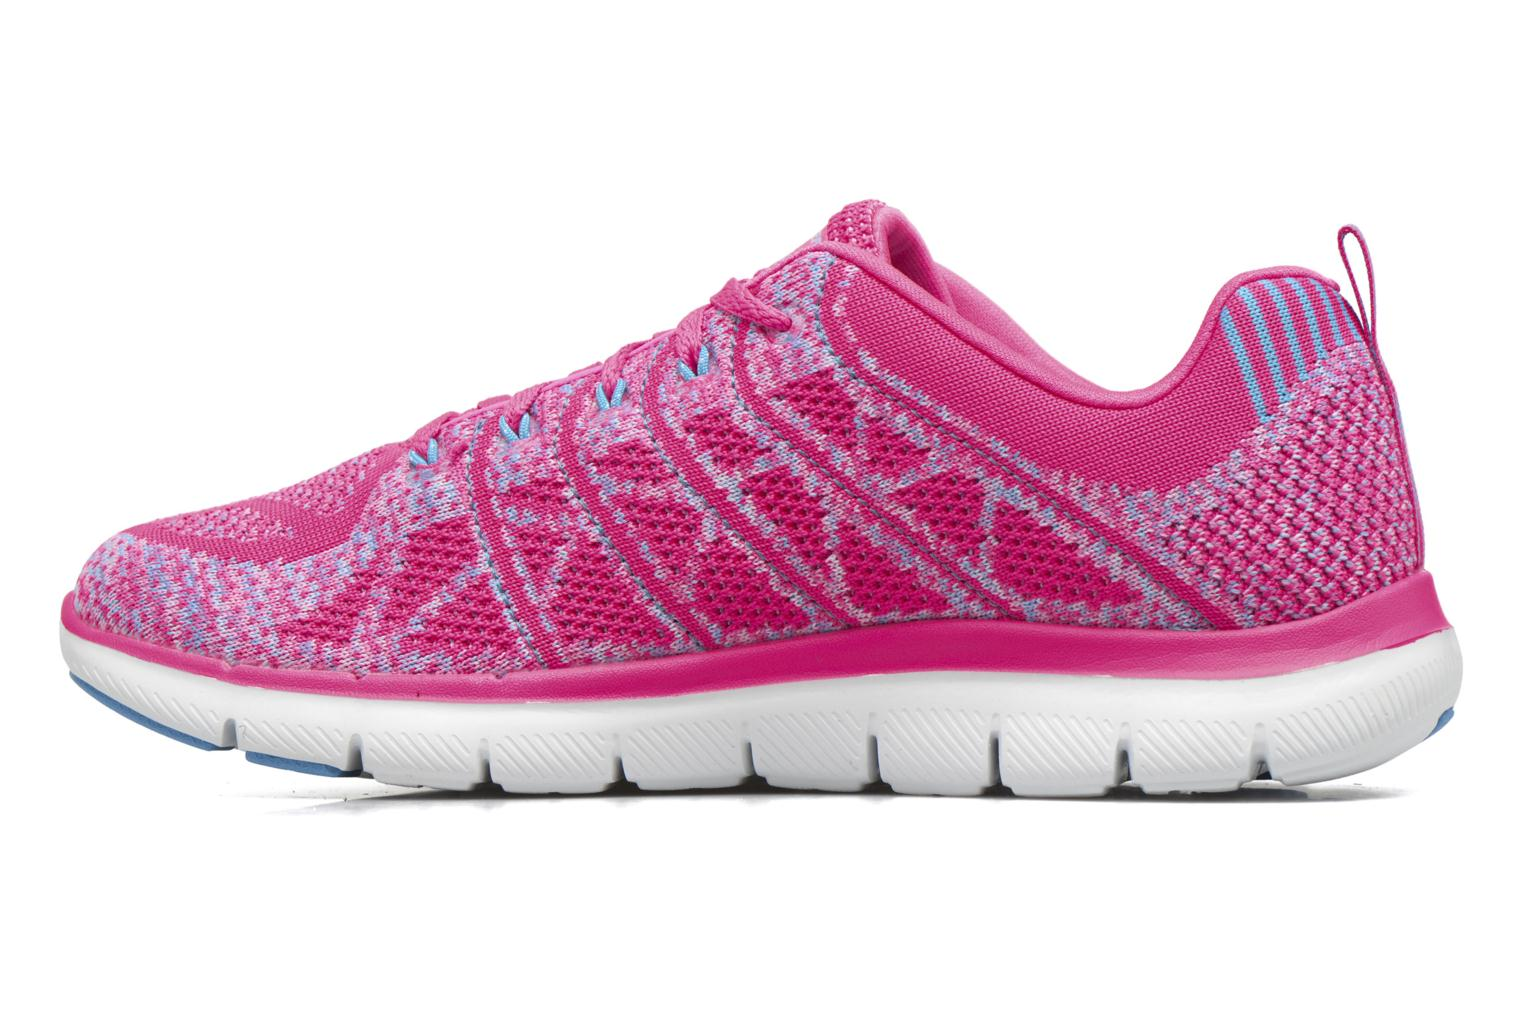 Zapatillas de deporte Skechers Flex Appeal 2.0 New Gem Rosa vista de frente